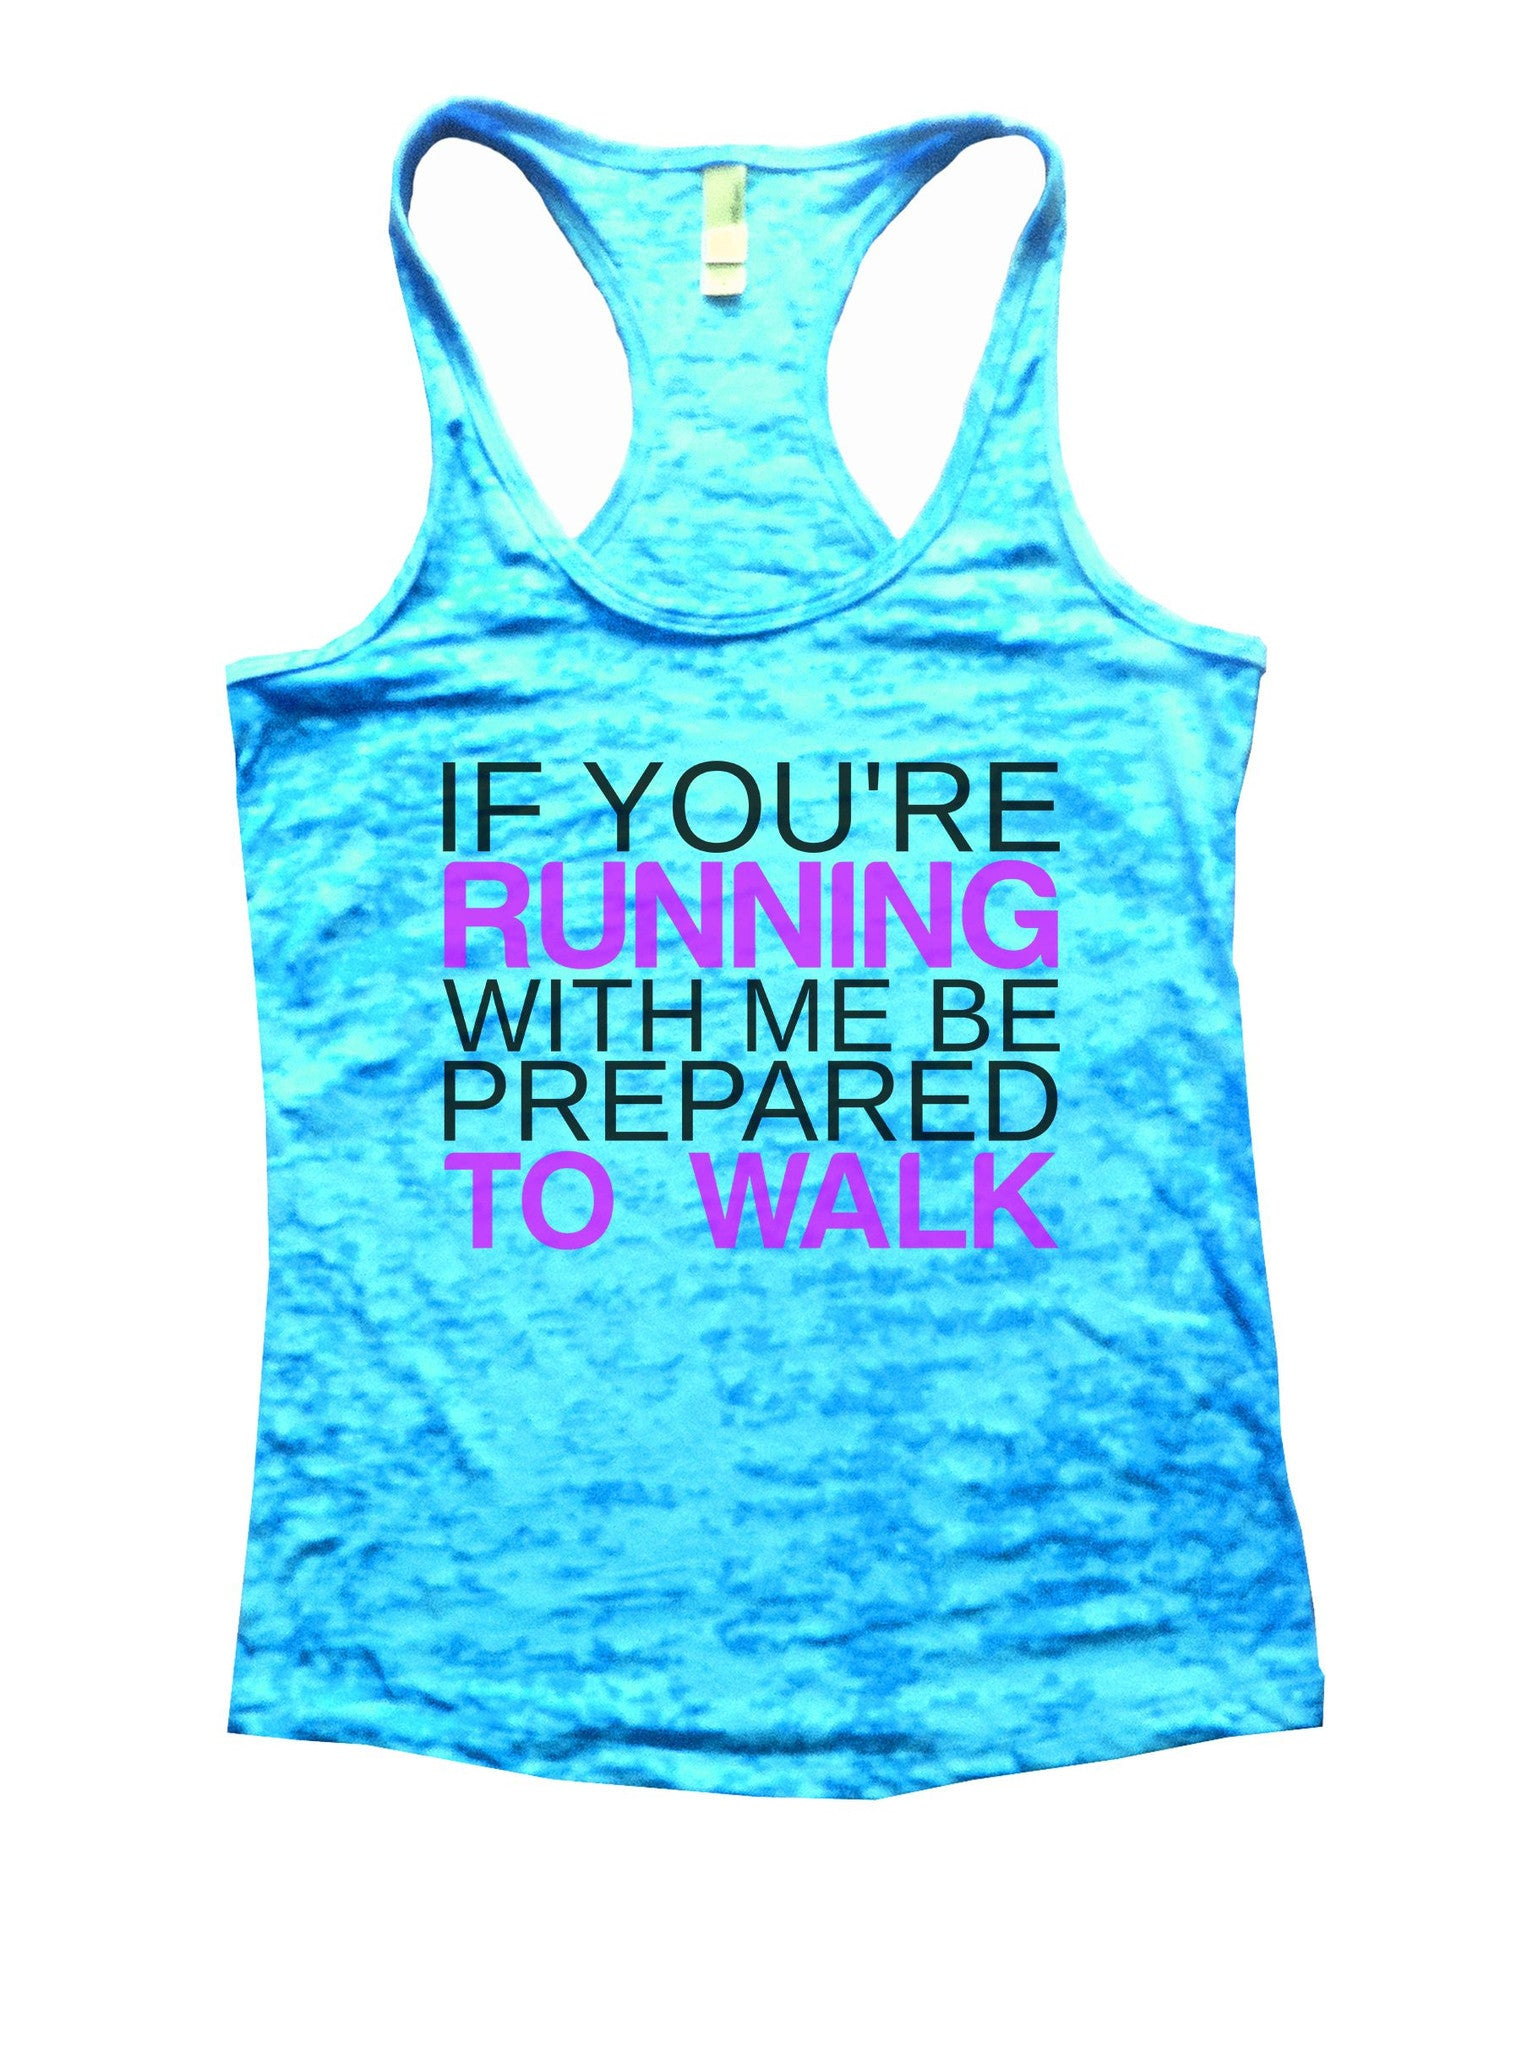 If You're Running With Me Be Prepared To Walk Burnout Tank Top By BurnoutTankTops.com - 858 - Funny Shirts Tank Tops Burnouts and Triblends  - 4